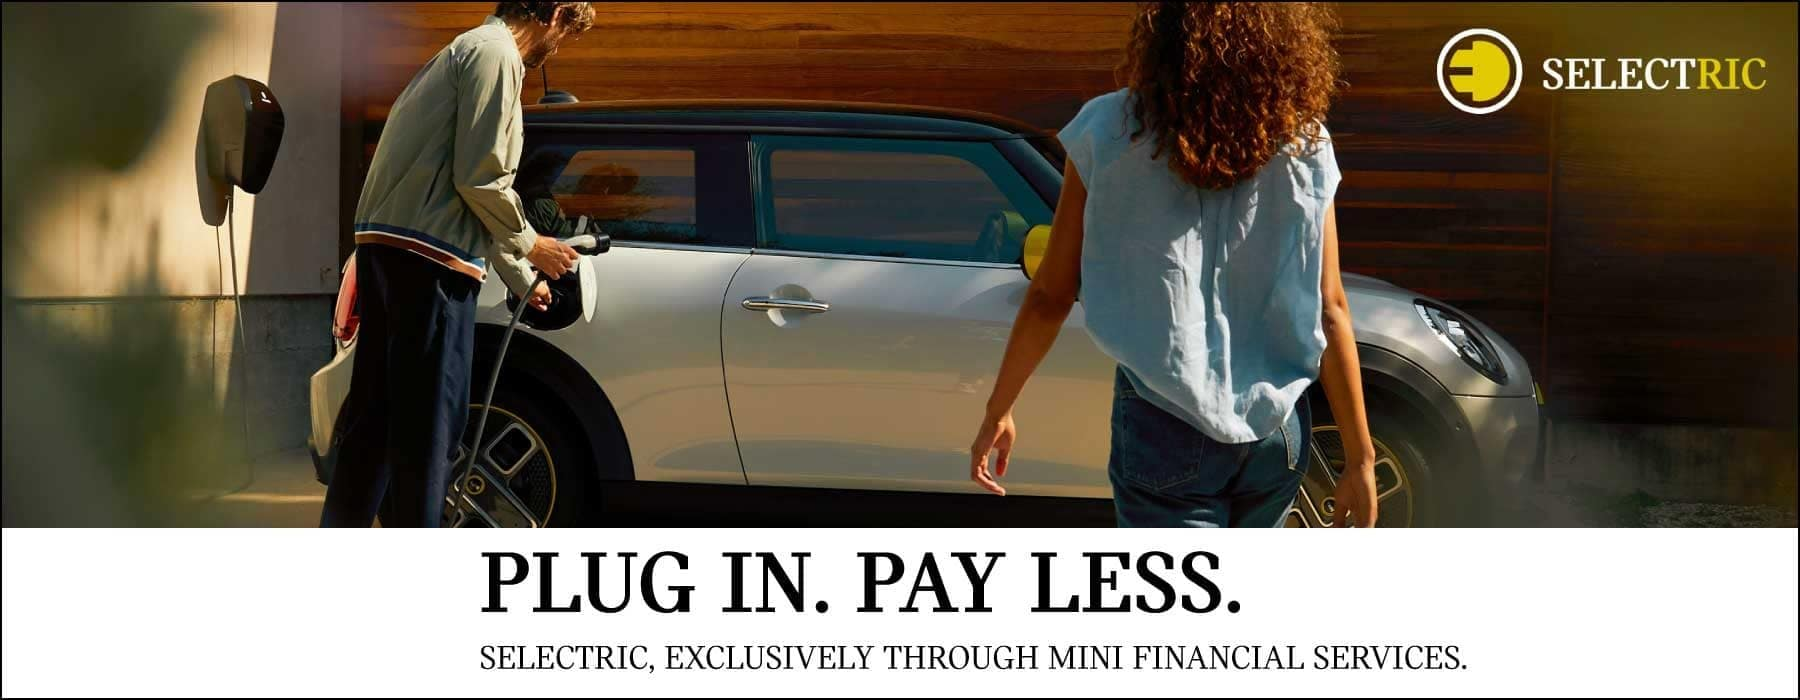 Selectric plug in pay less